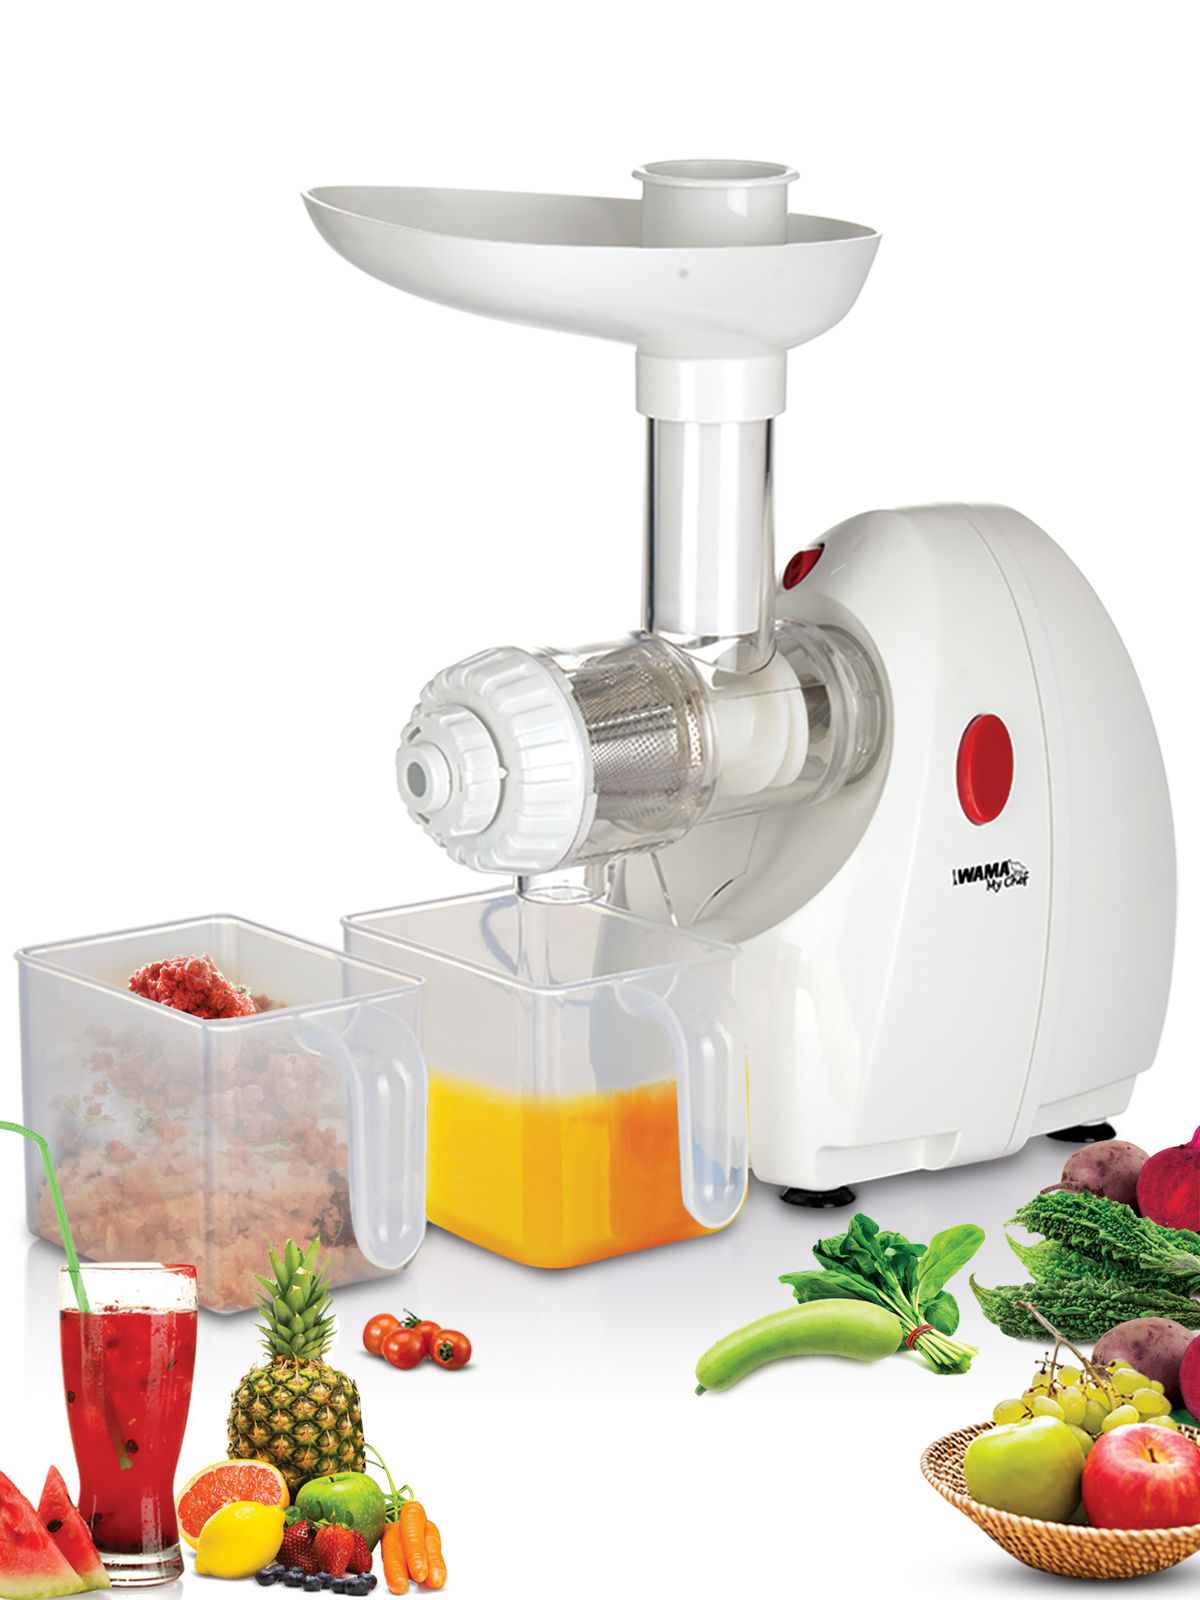 Slow Juicer Beets : Buy WAMA Slow Juicer Online at Best Price in India on Naaptol.com